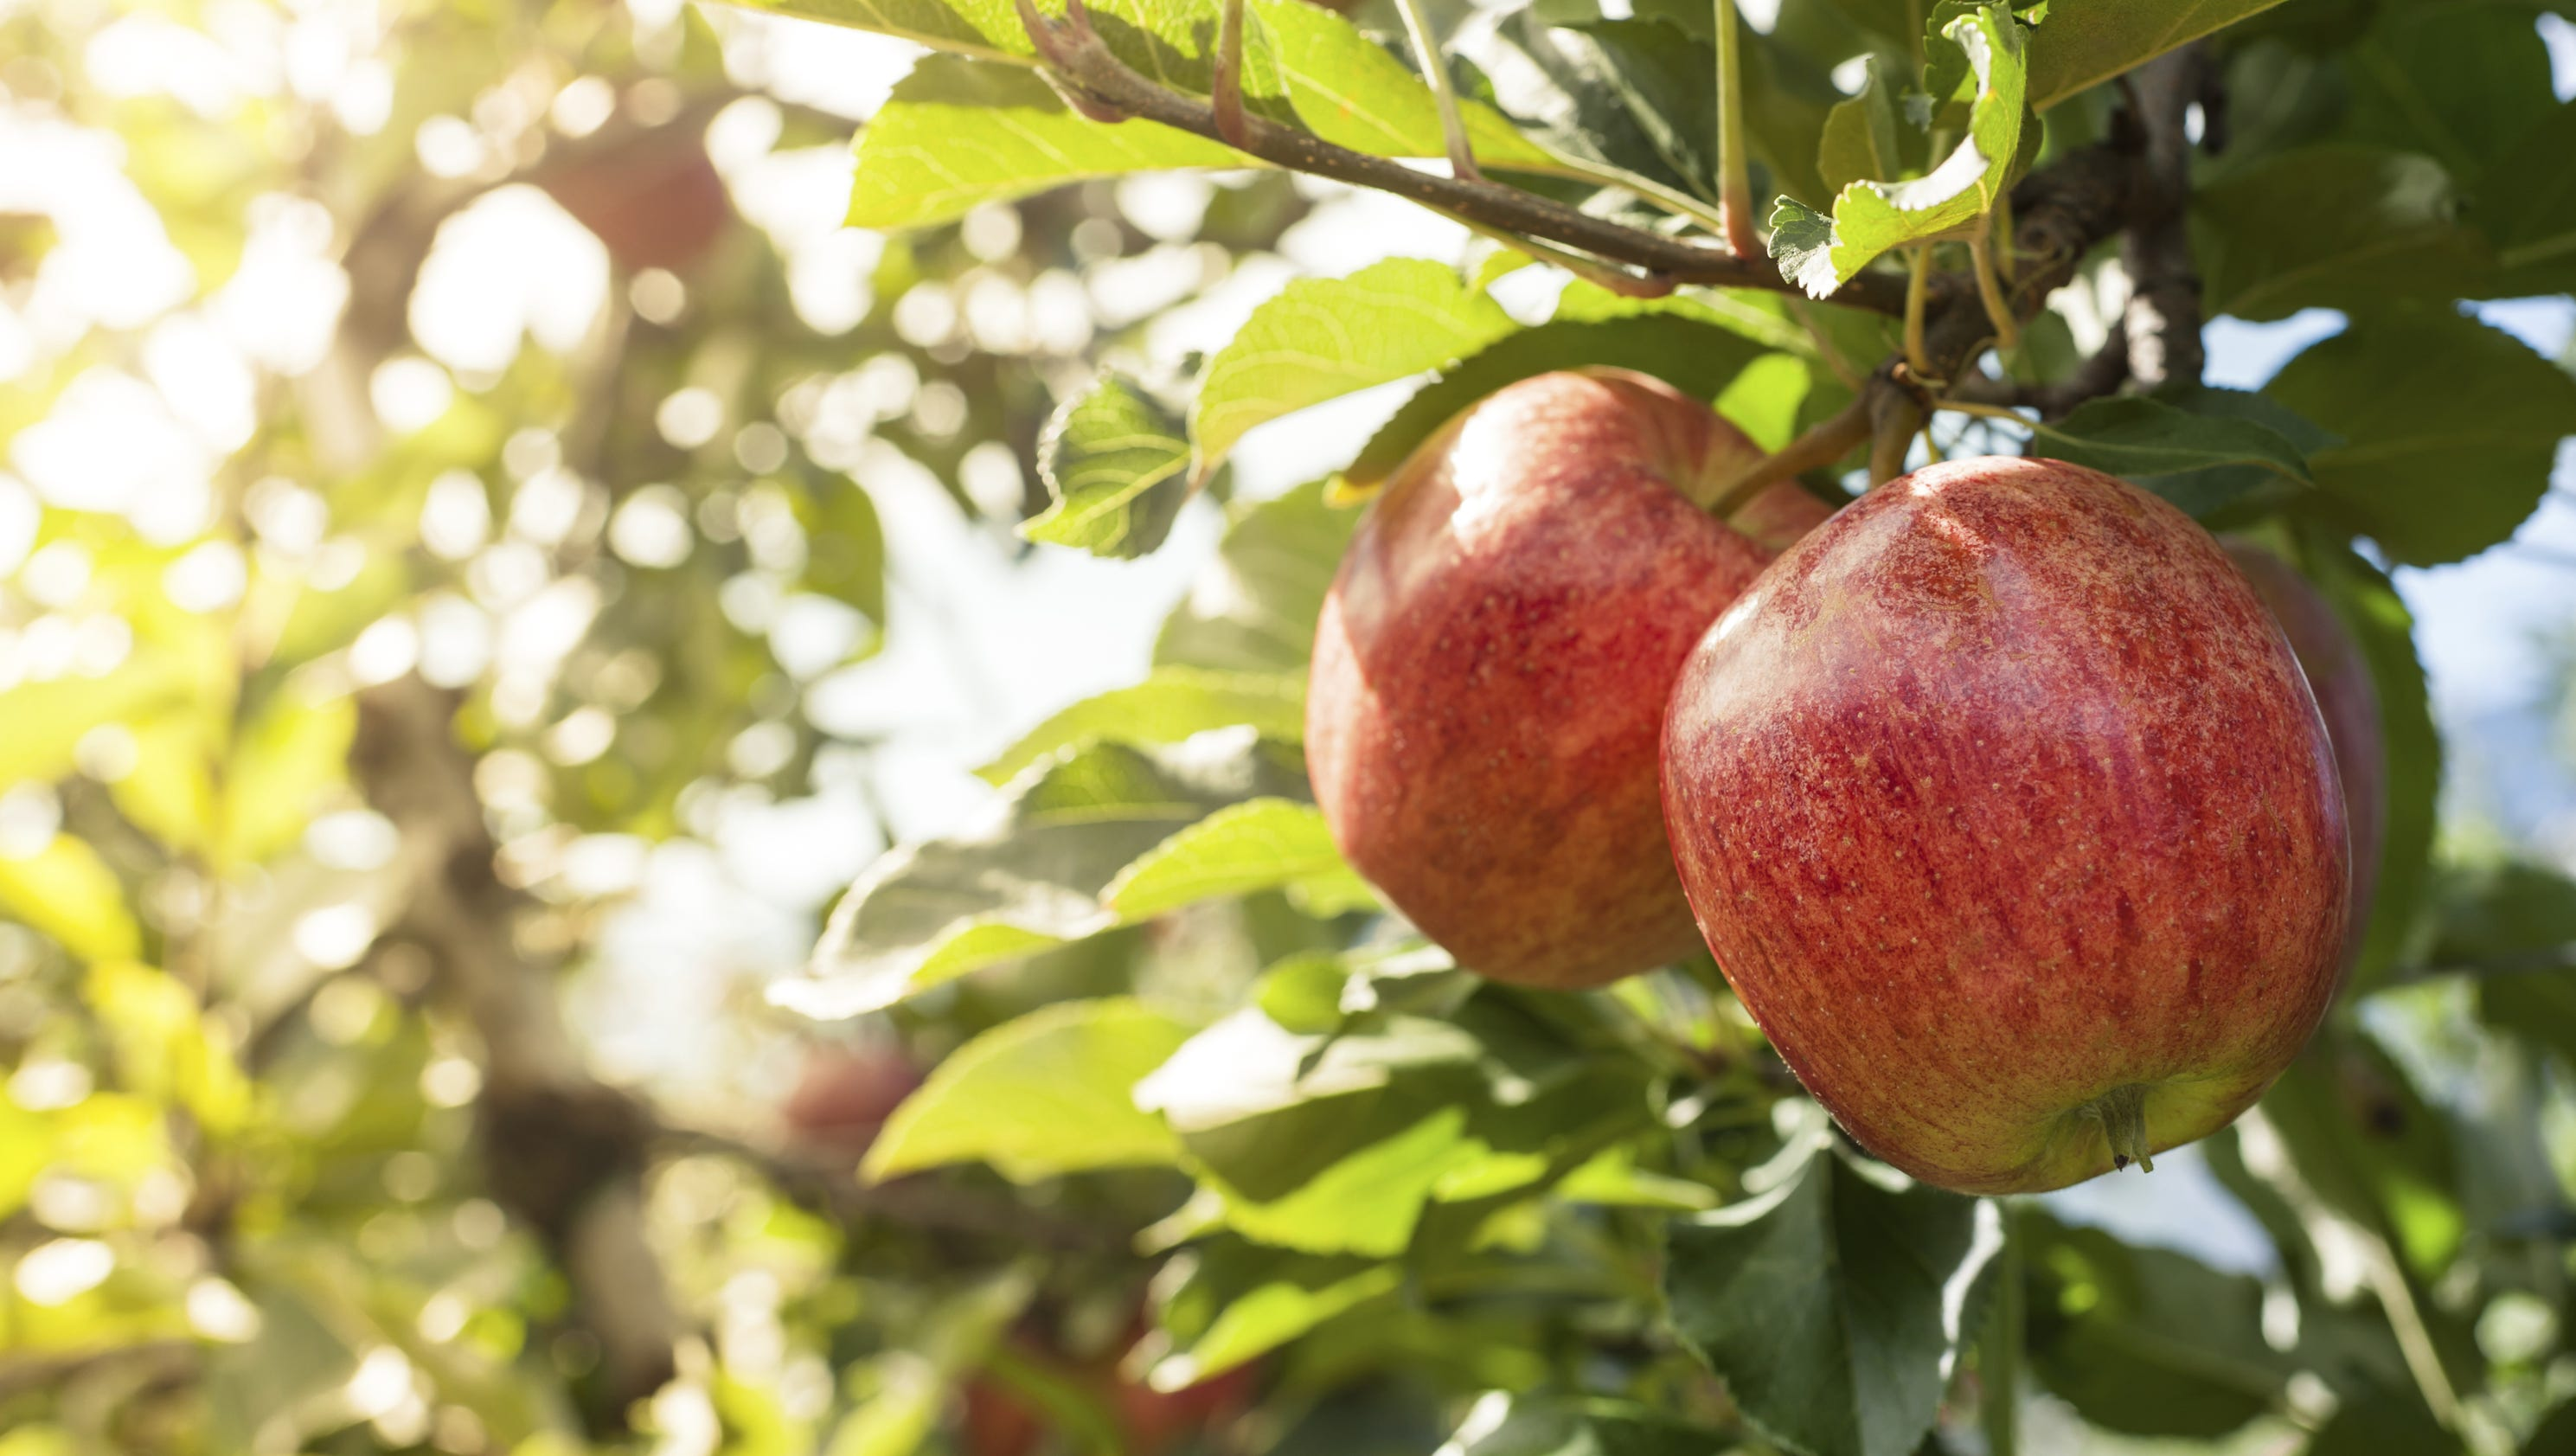 Apple Picking 2017 Where To Go In Ny And Nj